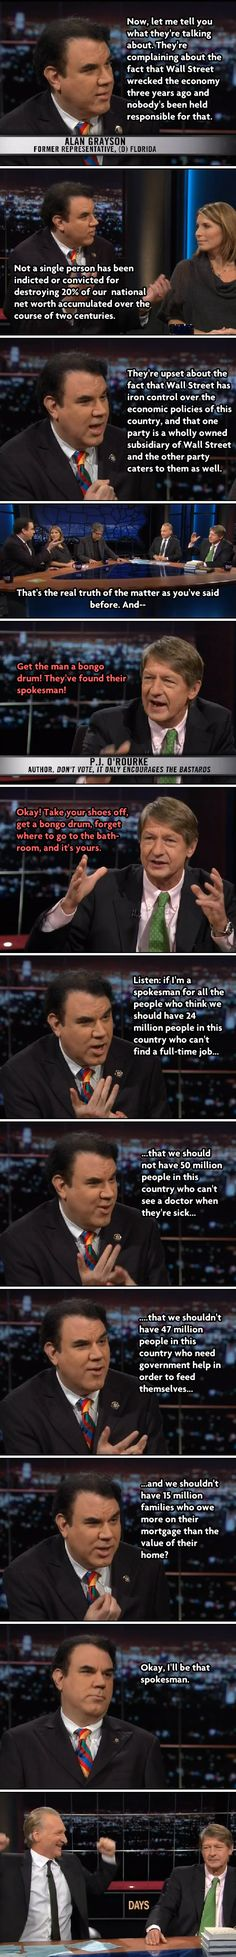 All of #OccupyWallStreet summed up in one exchange between Alan Grayson and PJ O'Rourke. #occupywallstreet